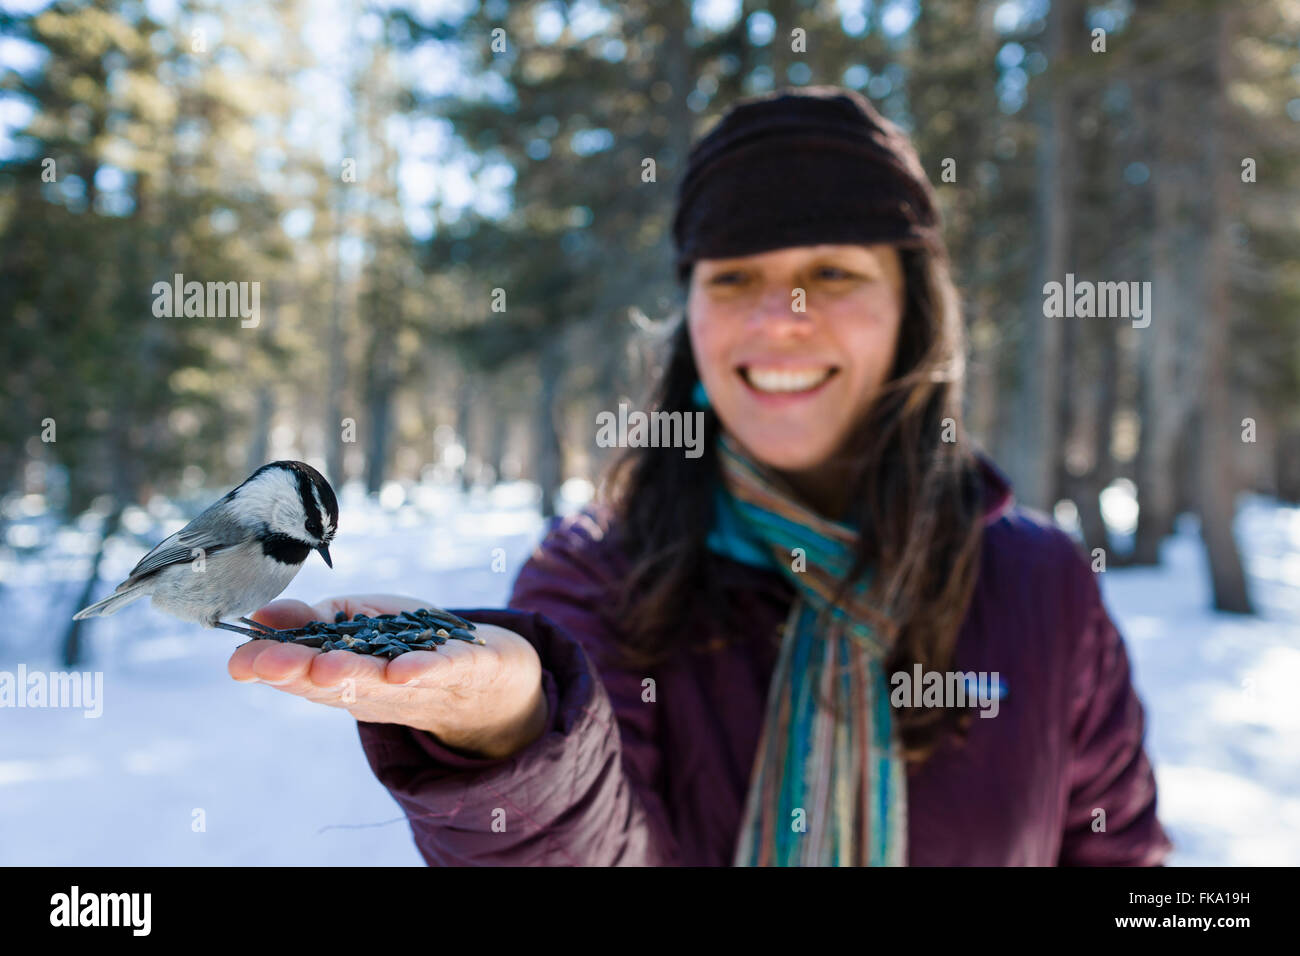 Wild Chickadee birds eat out of stylish woman's hands in snowy forest environment - Stock Image